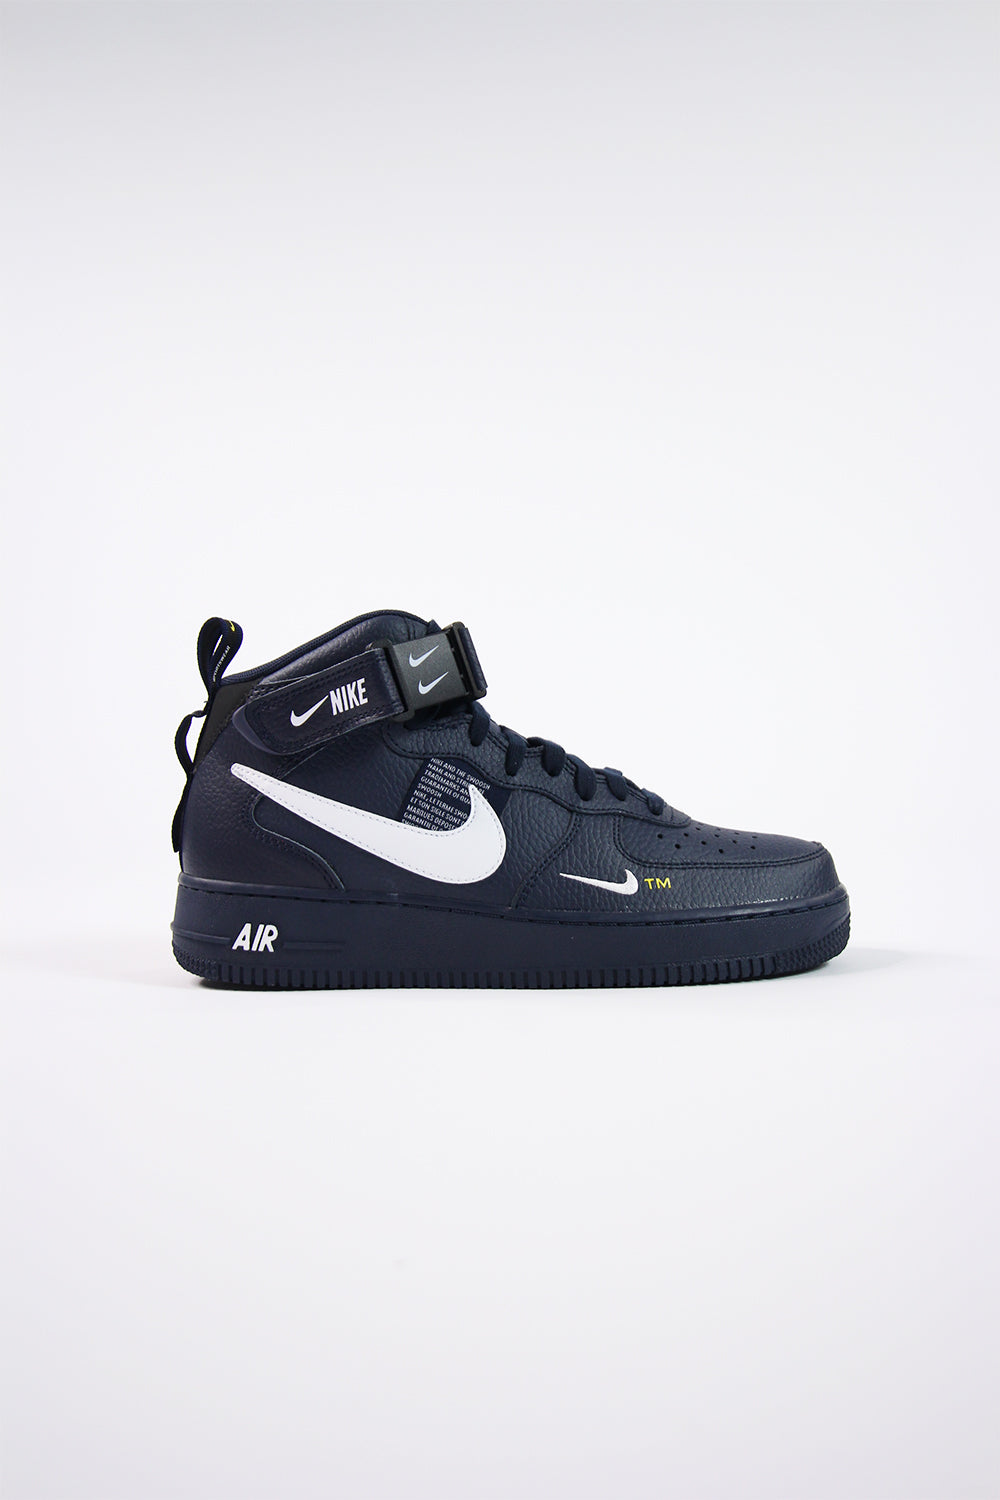 Nike - Air Force 1 Mid  07 LV8 (Obsidian White Black Tour Yellow) 804609-403 e4e47908f